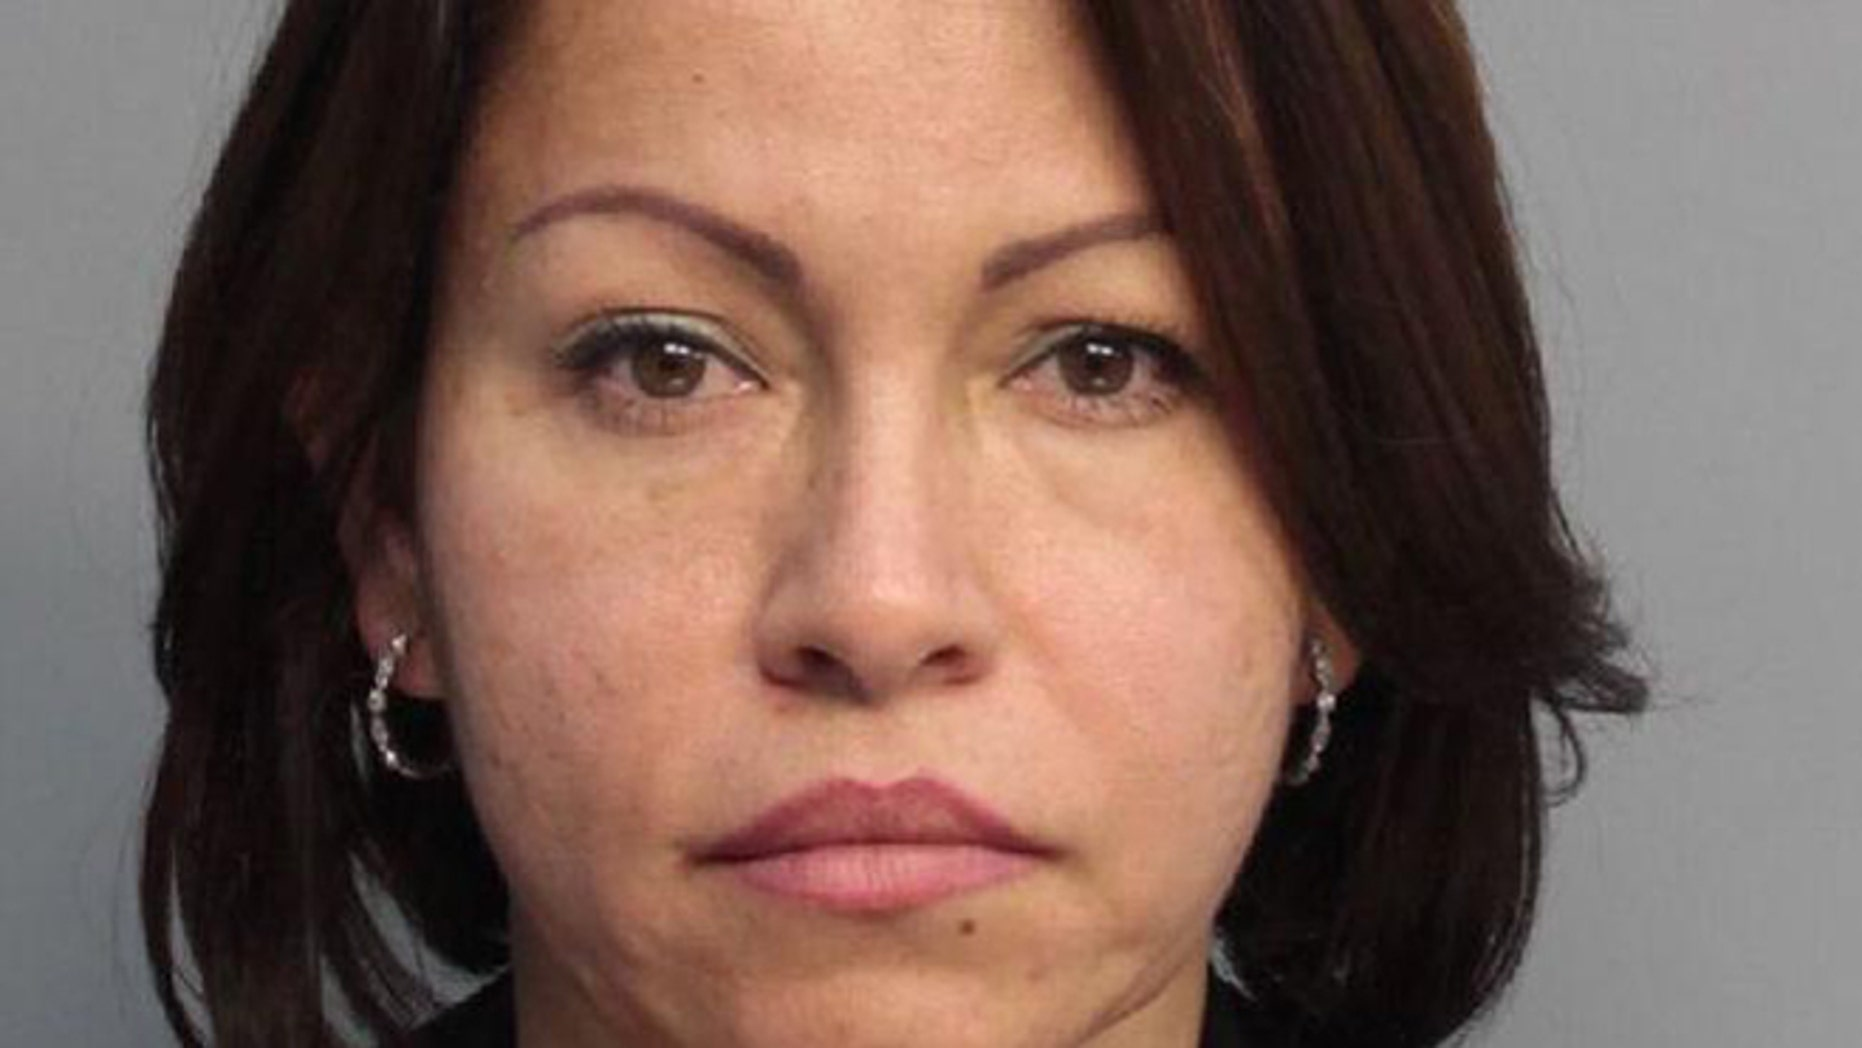 Nery Carvajal Gonzalez (Photo: Miami-Dade Department of Corrections)